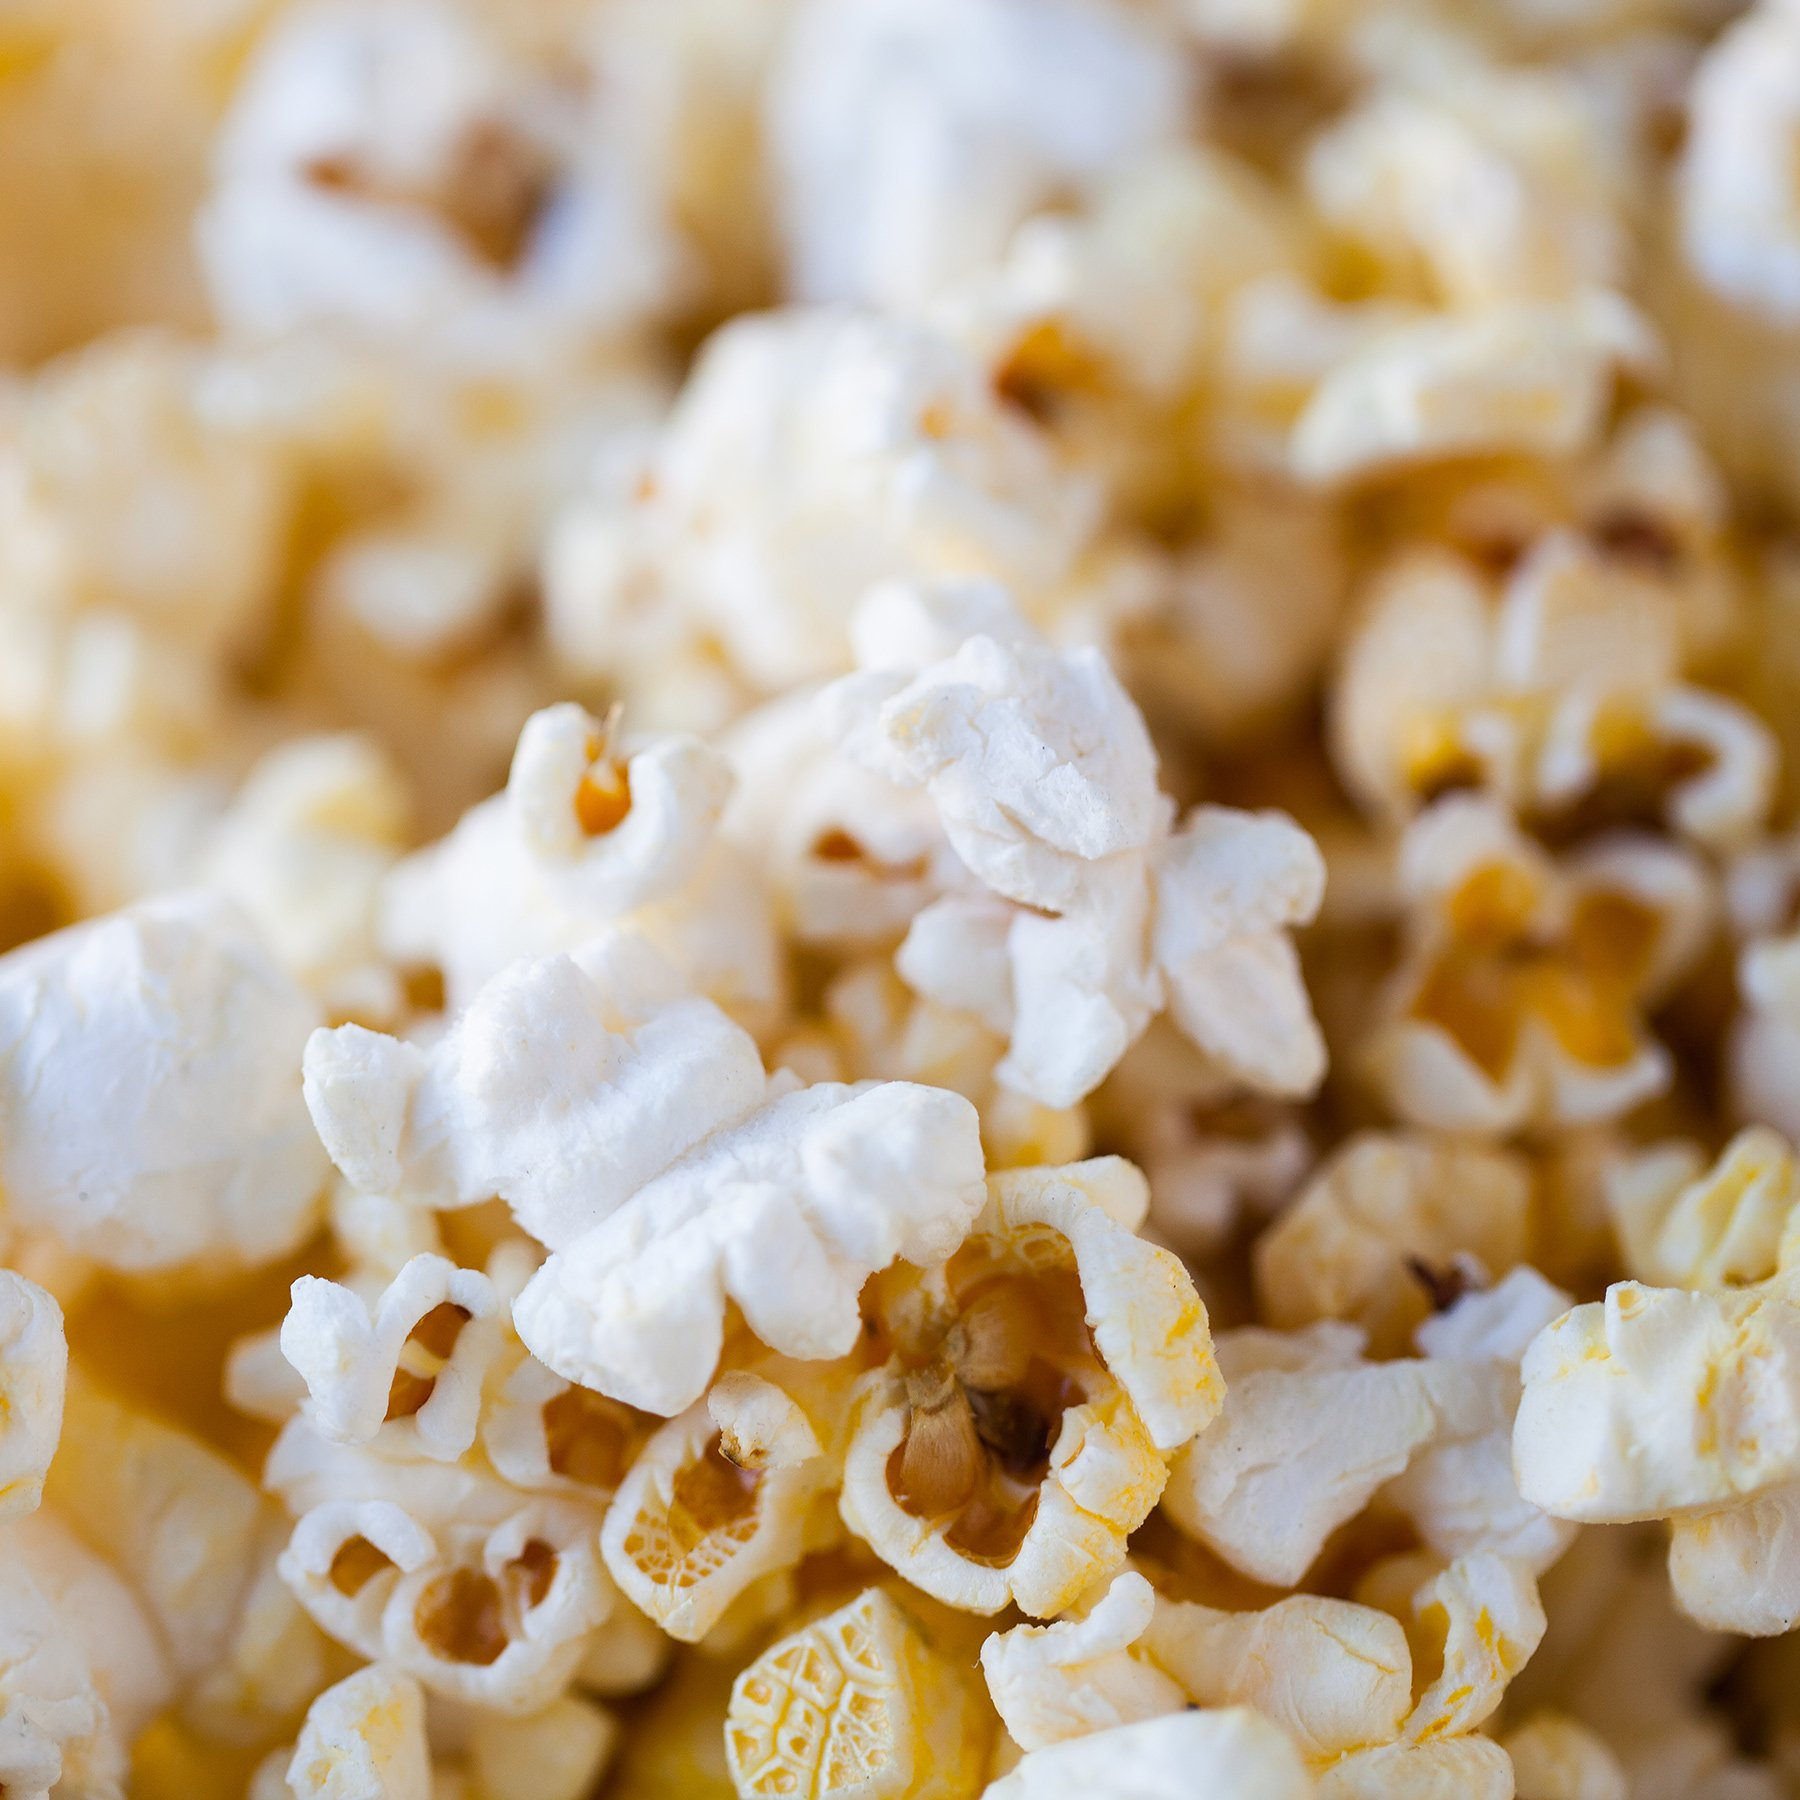 Your new year's resolution is to see a movie every #PopcornTuesday! Popcorn is 50% off with your Crown Club card. https://t.co/gVWSnPC2S4